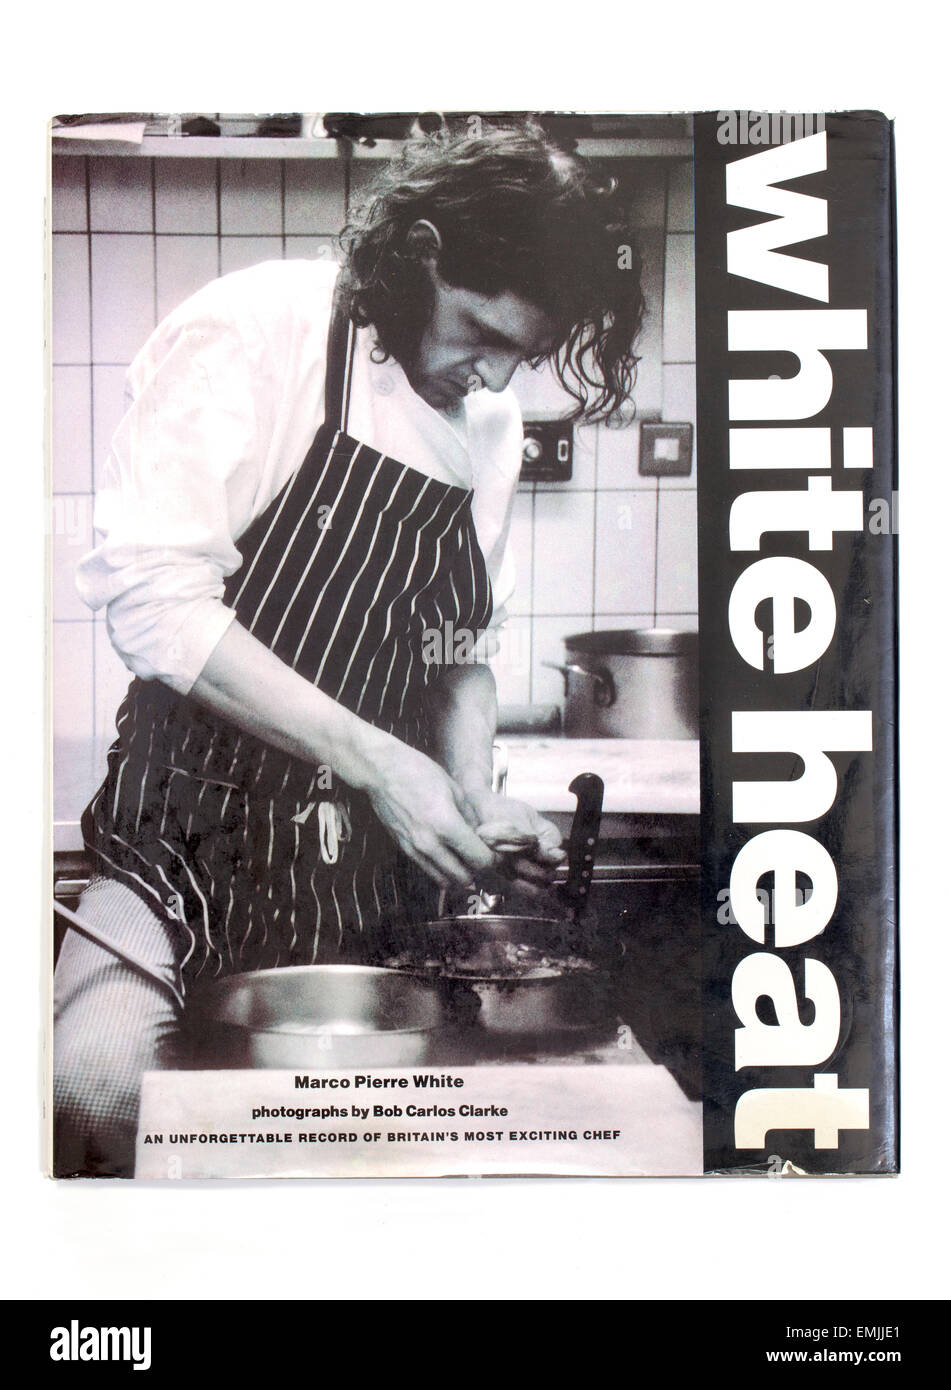 White Heat Cookery Book by Marco Pierre White and Bob Carlos Clarke - Stock Image